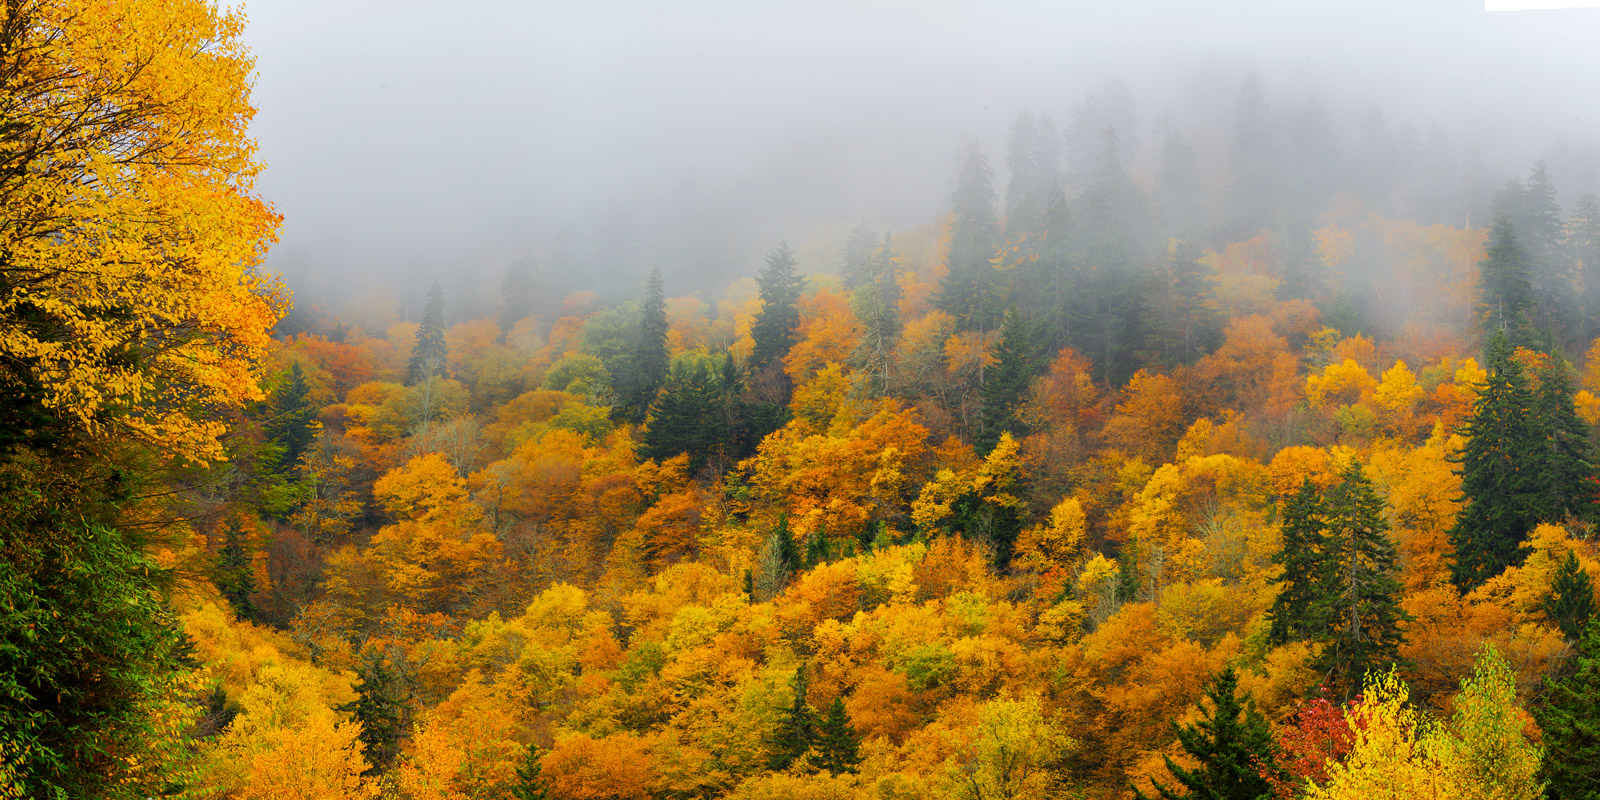 A Limited Edition, Fine Art photograph of Smoky Mountains Fall color with trees with brilliant fall colors in the fog in the...